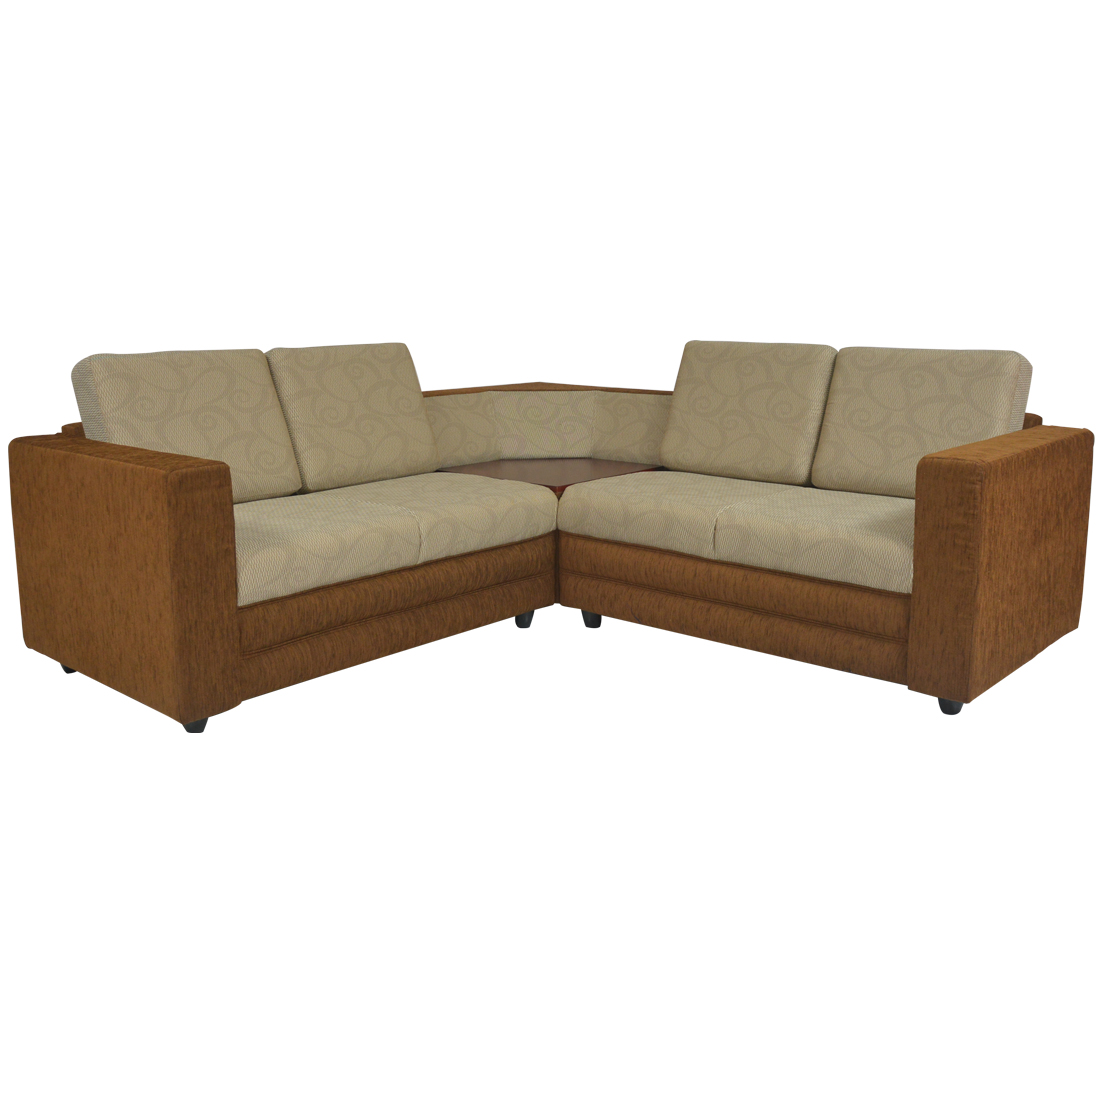 Buy Legend Sectional Sofa Dark Brown Base And Light Brown Cushion Online In Sri Lanka Singer